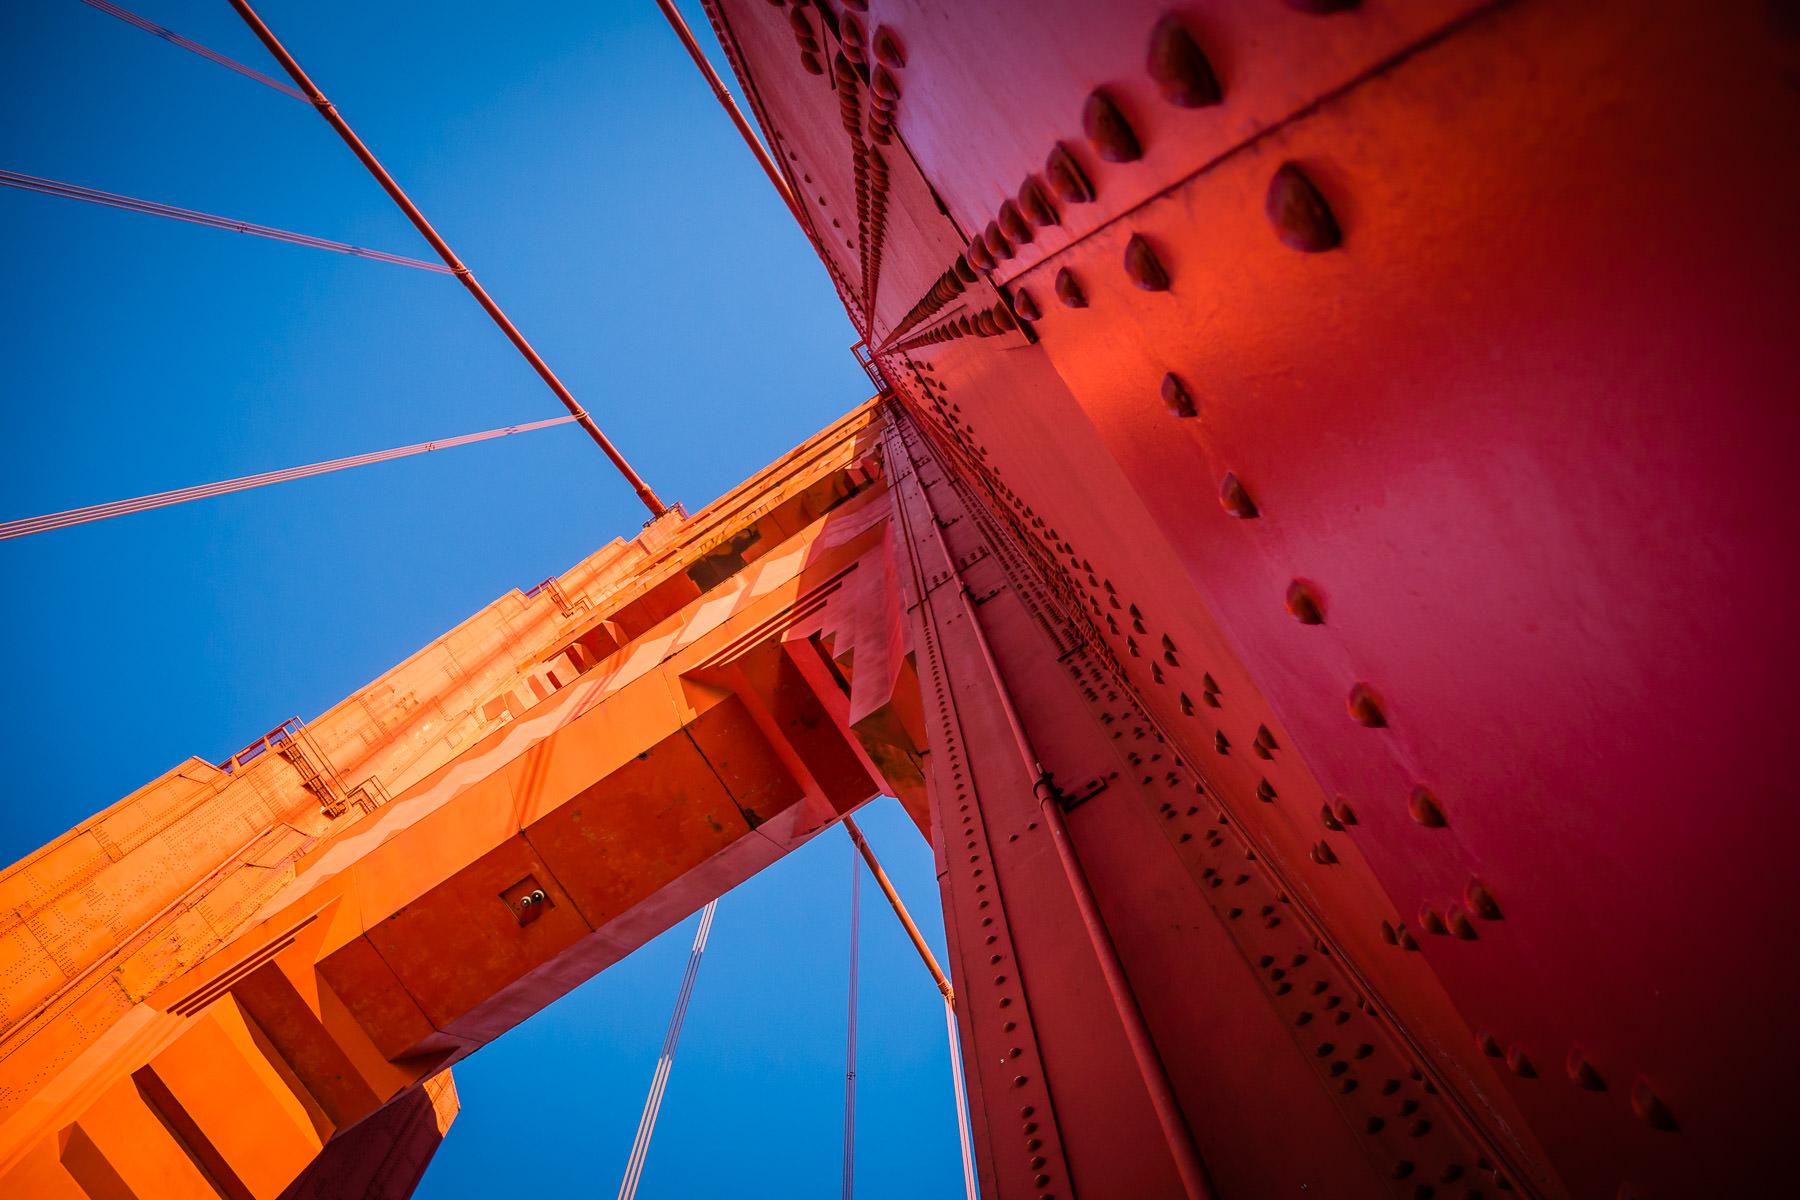 The 746-foot-tall (220 meters) south tower of San Francisco's iconic Golden Gate Bridge rises into the sky.